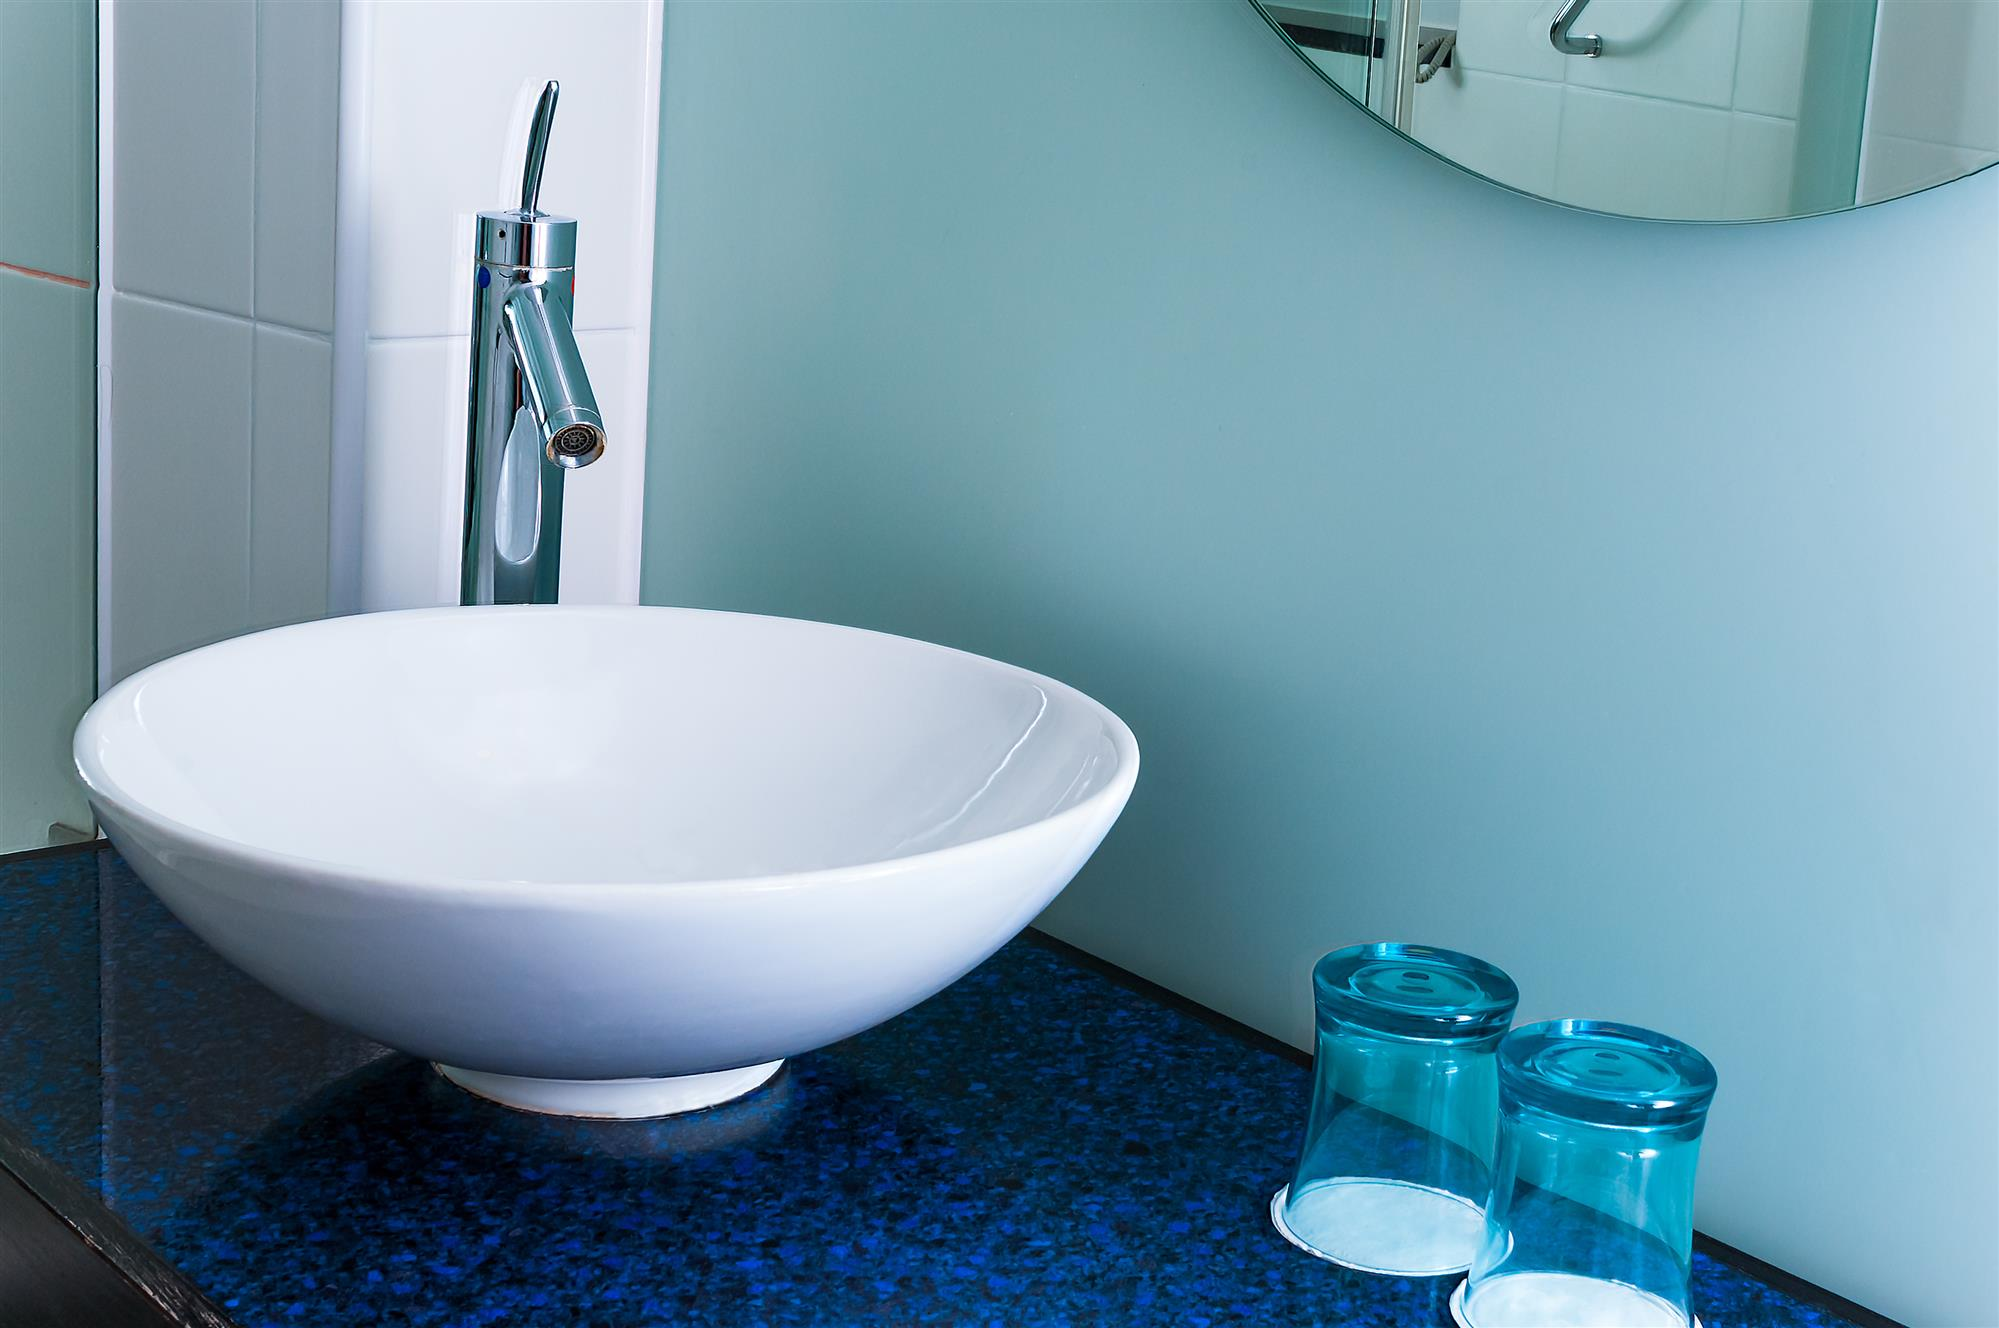 Bathroom sink with blue countertop